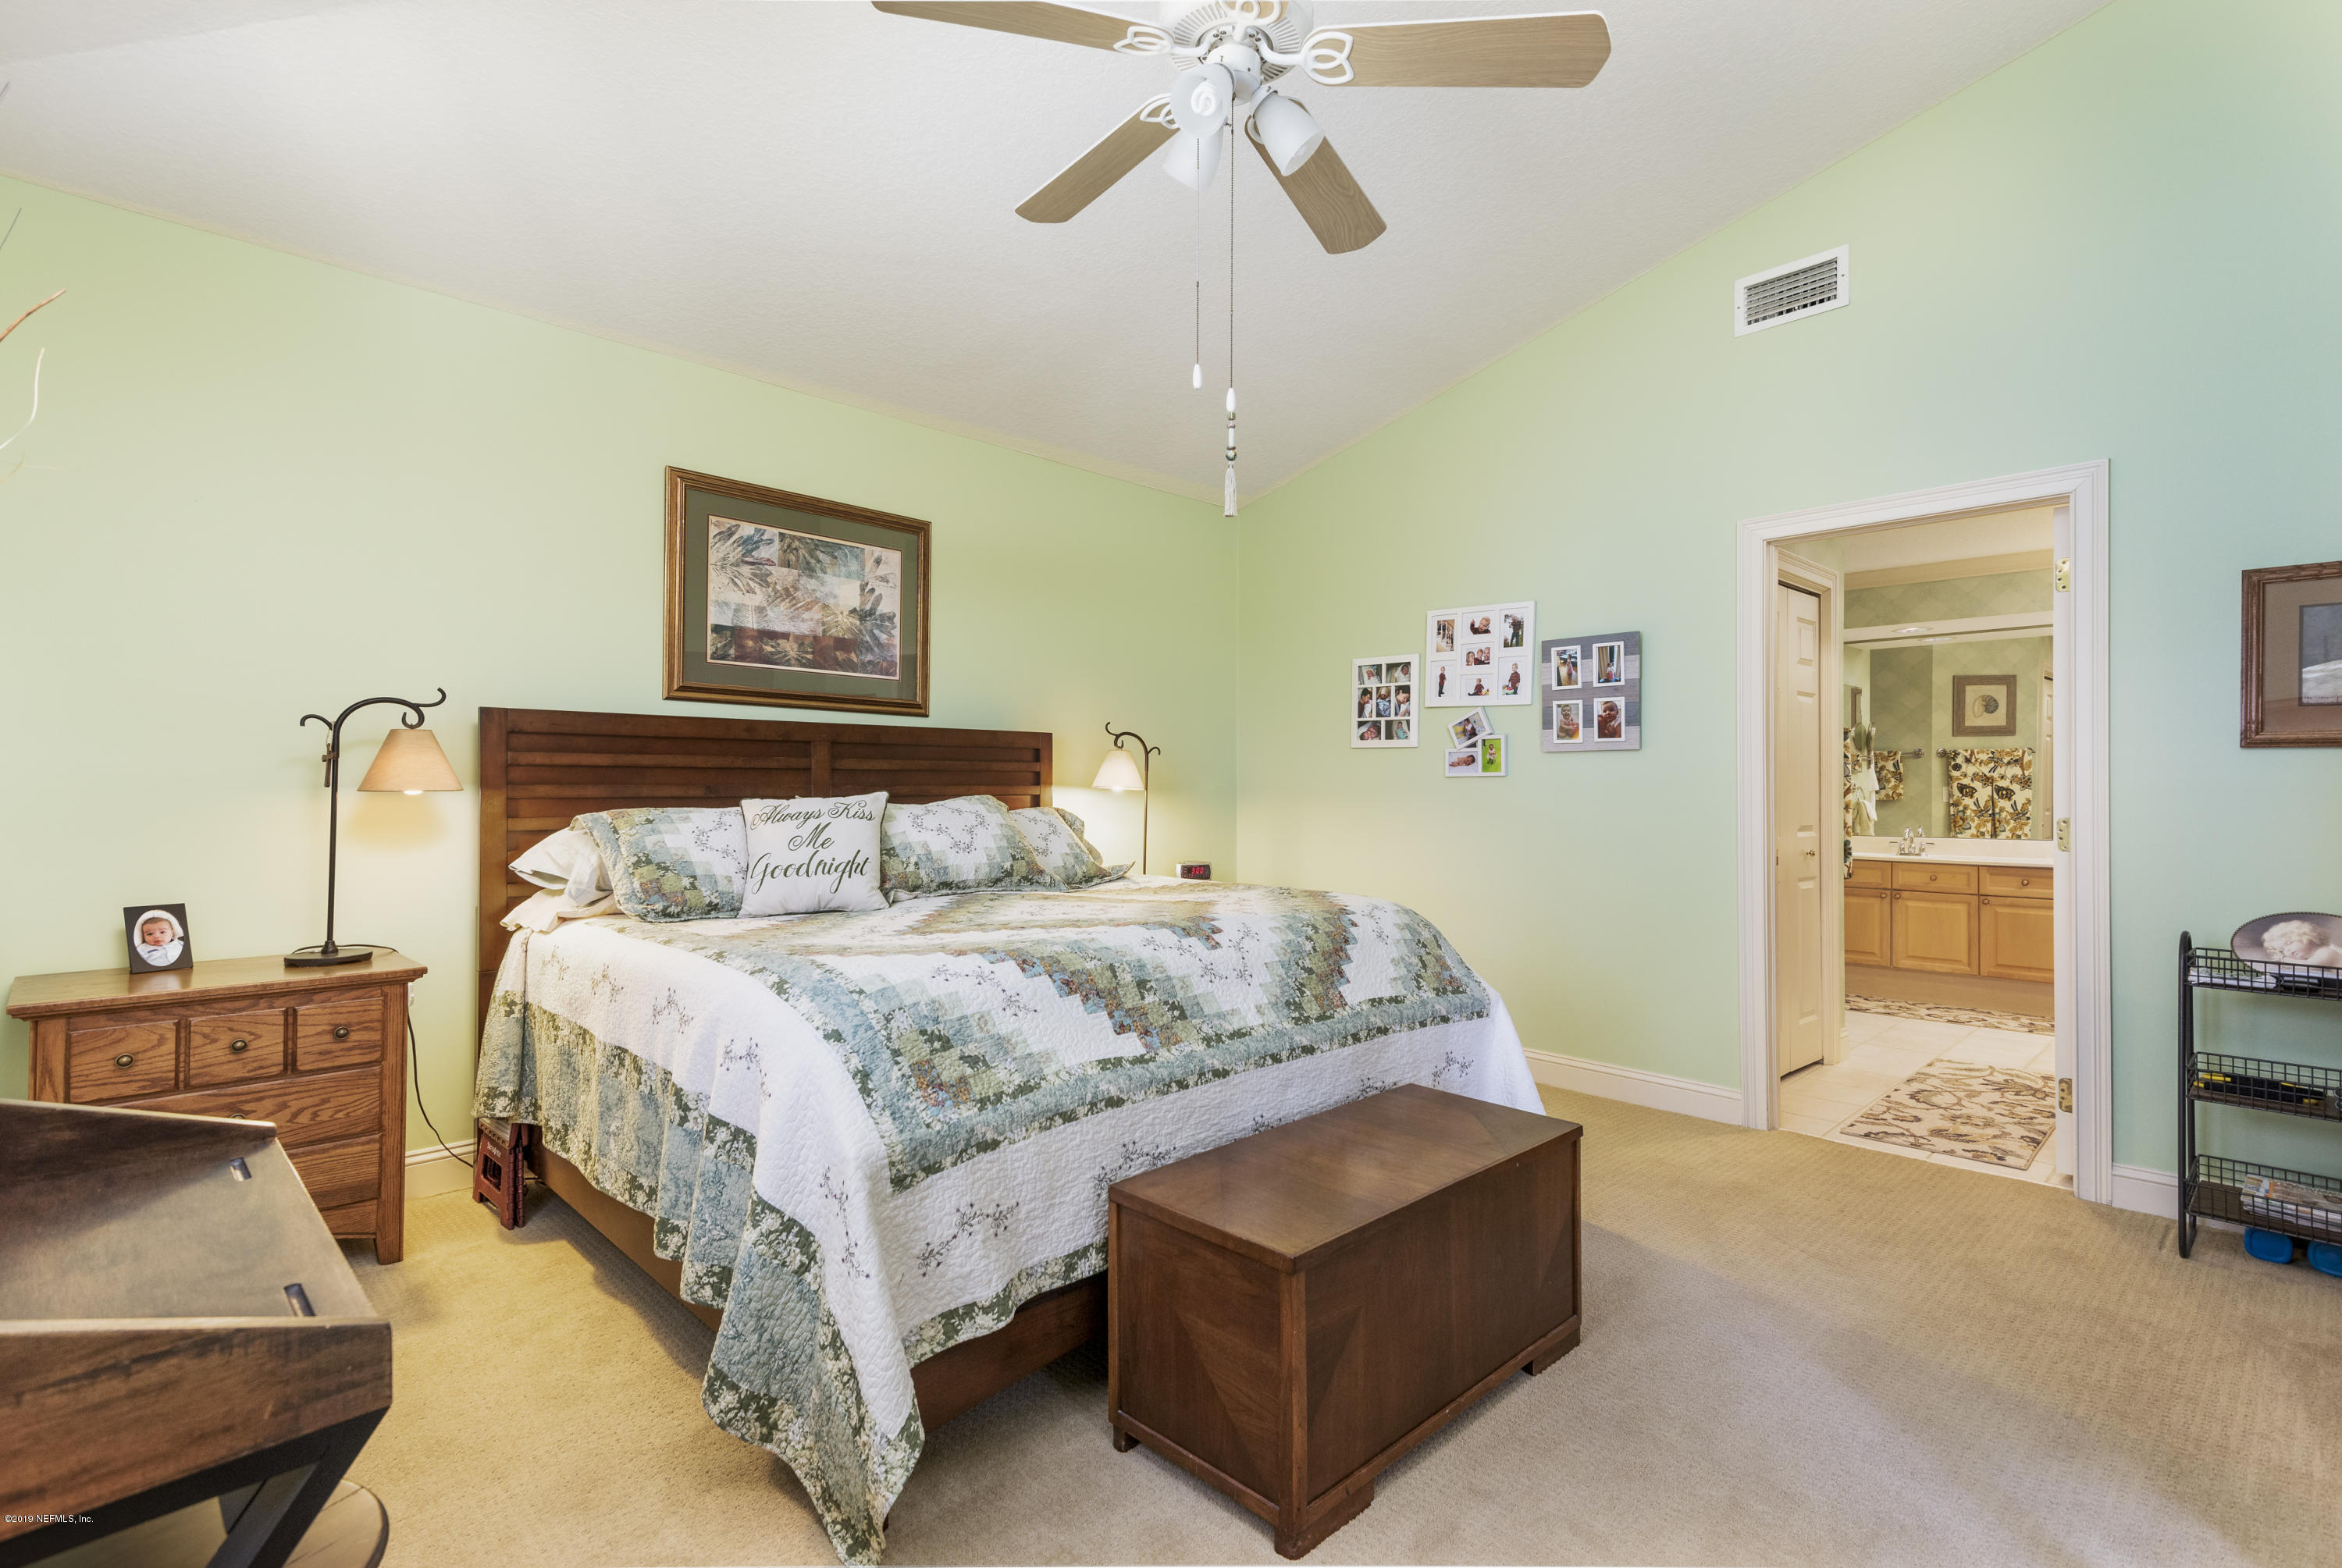 145 CHAMPIONS, ST AUGUSTINE, FLORIDA 32092, 3 Bedrooms Bedrooms, ,3 BathroomsBathrooms,Residential - condos/townhomes,For sale,CHAMPIONS,974158